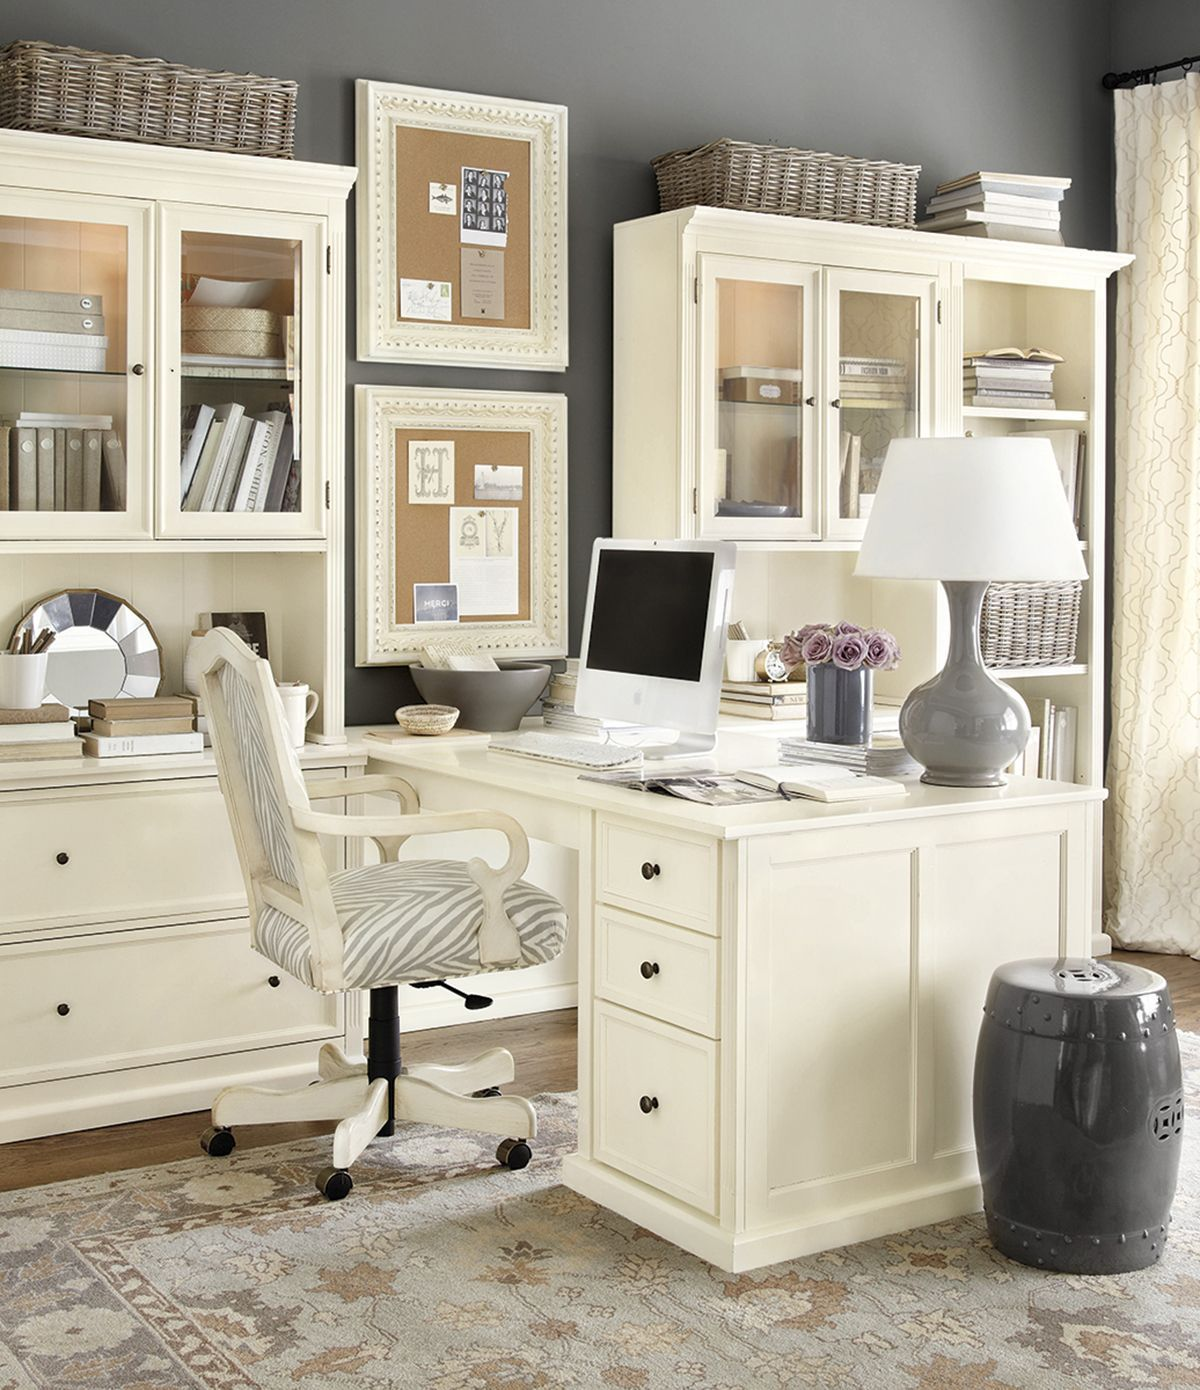 A home office layout like this would allow me to look out the window ...